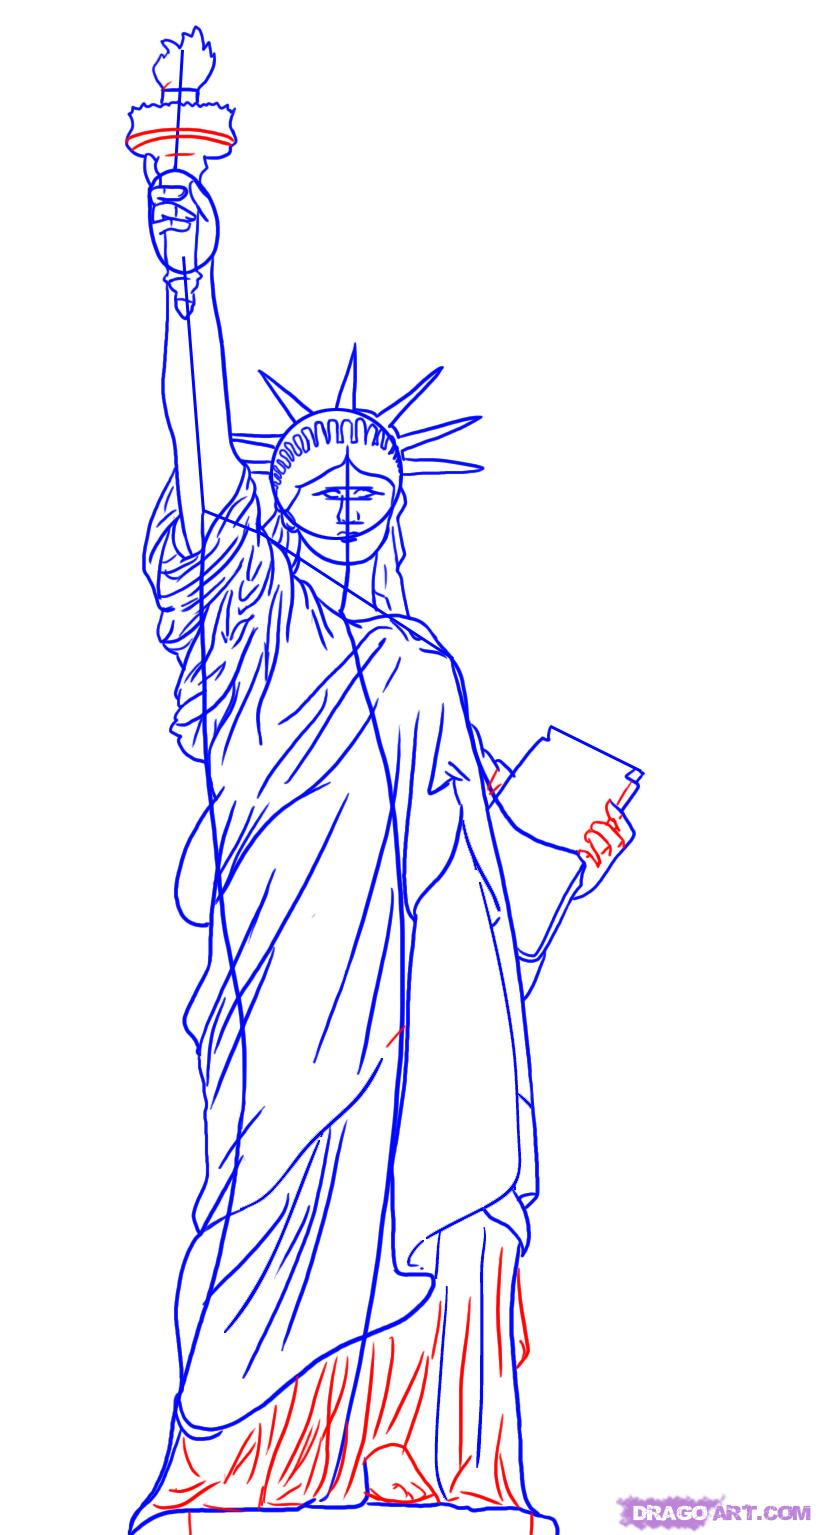 Drawn statue of liberty Of of Liberty 5 step